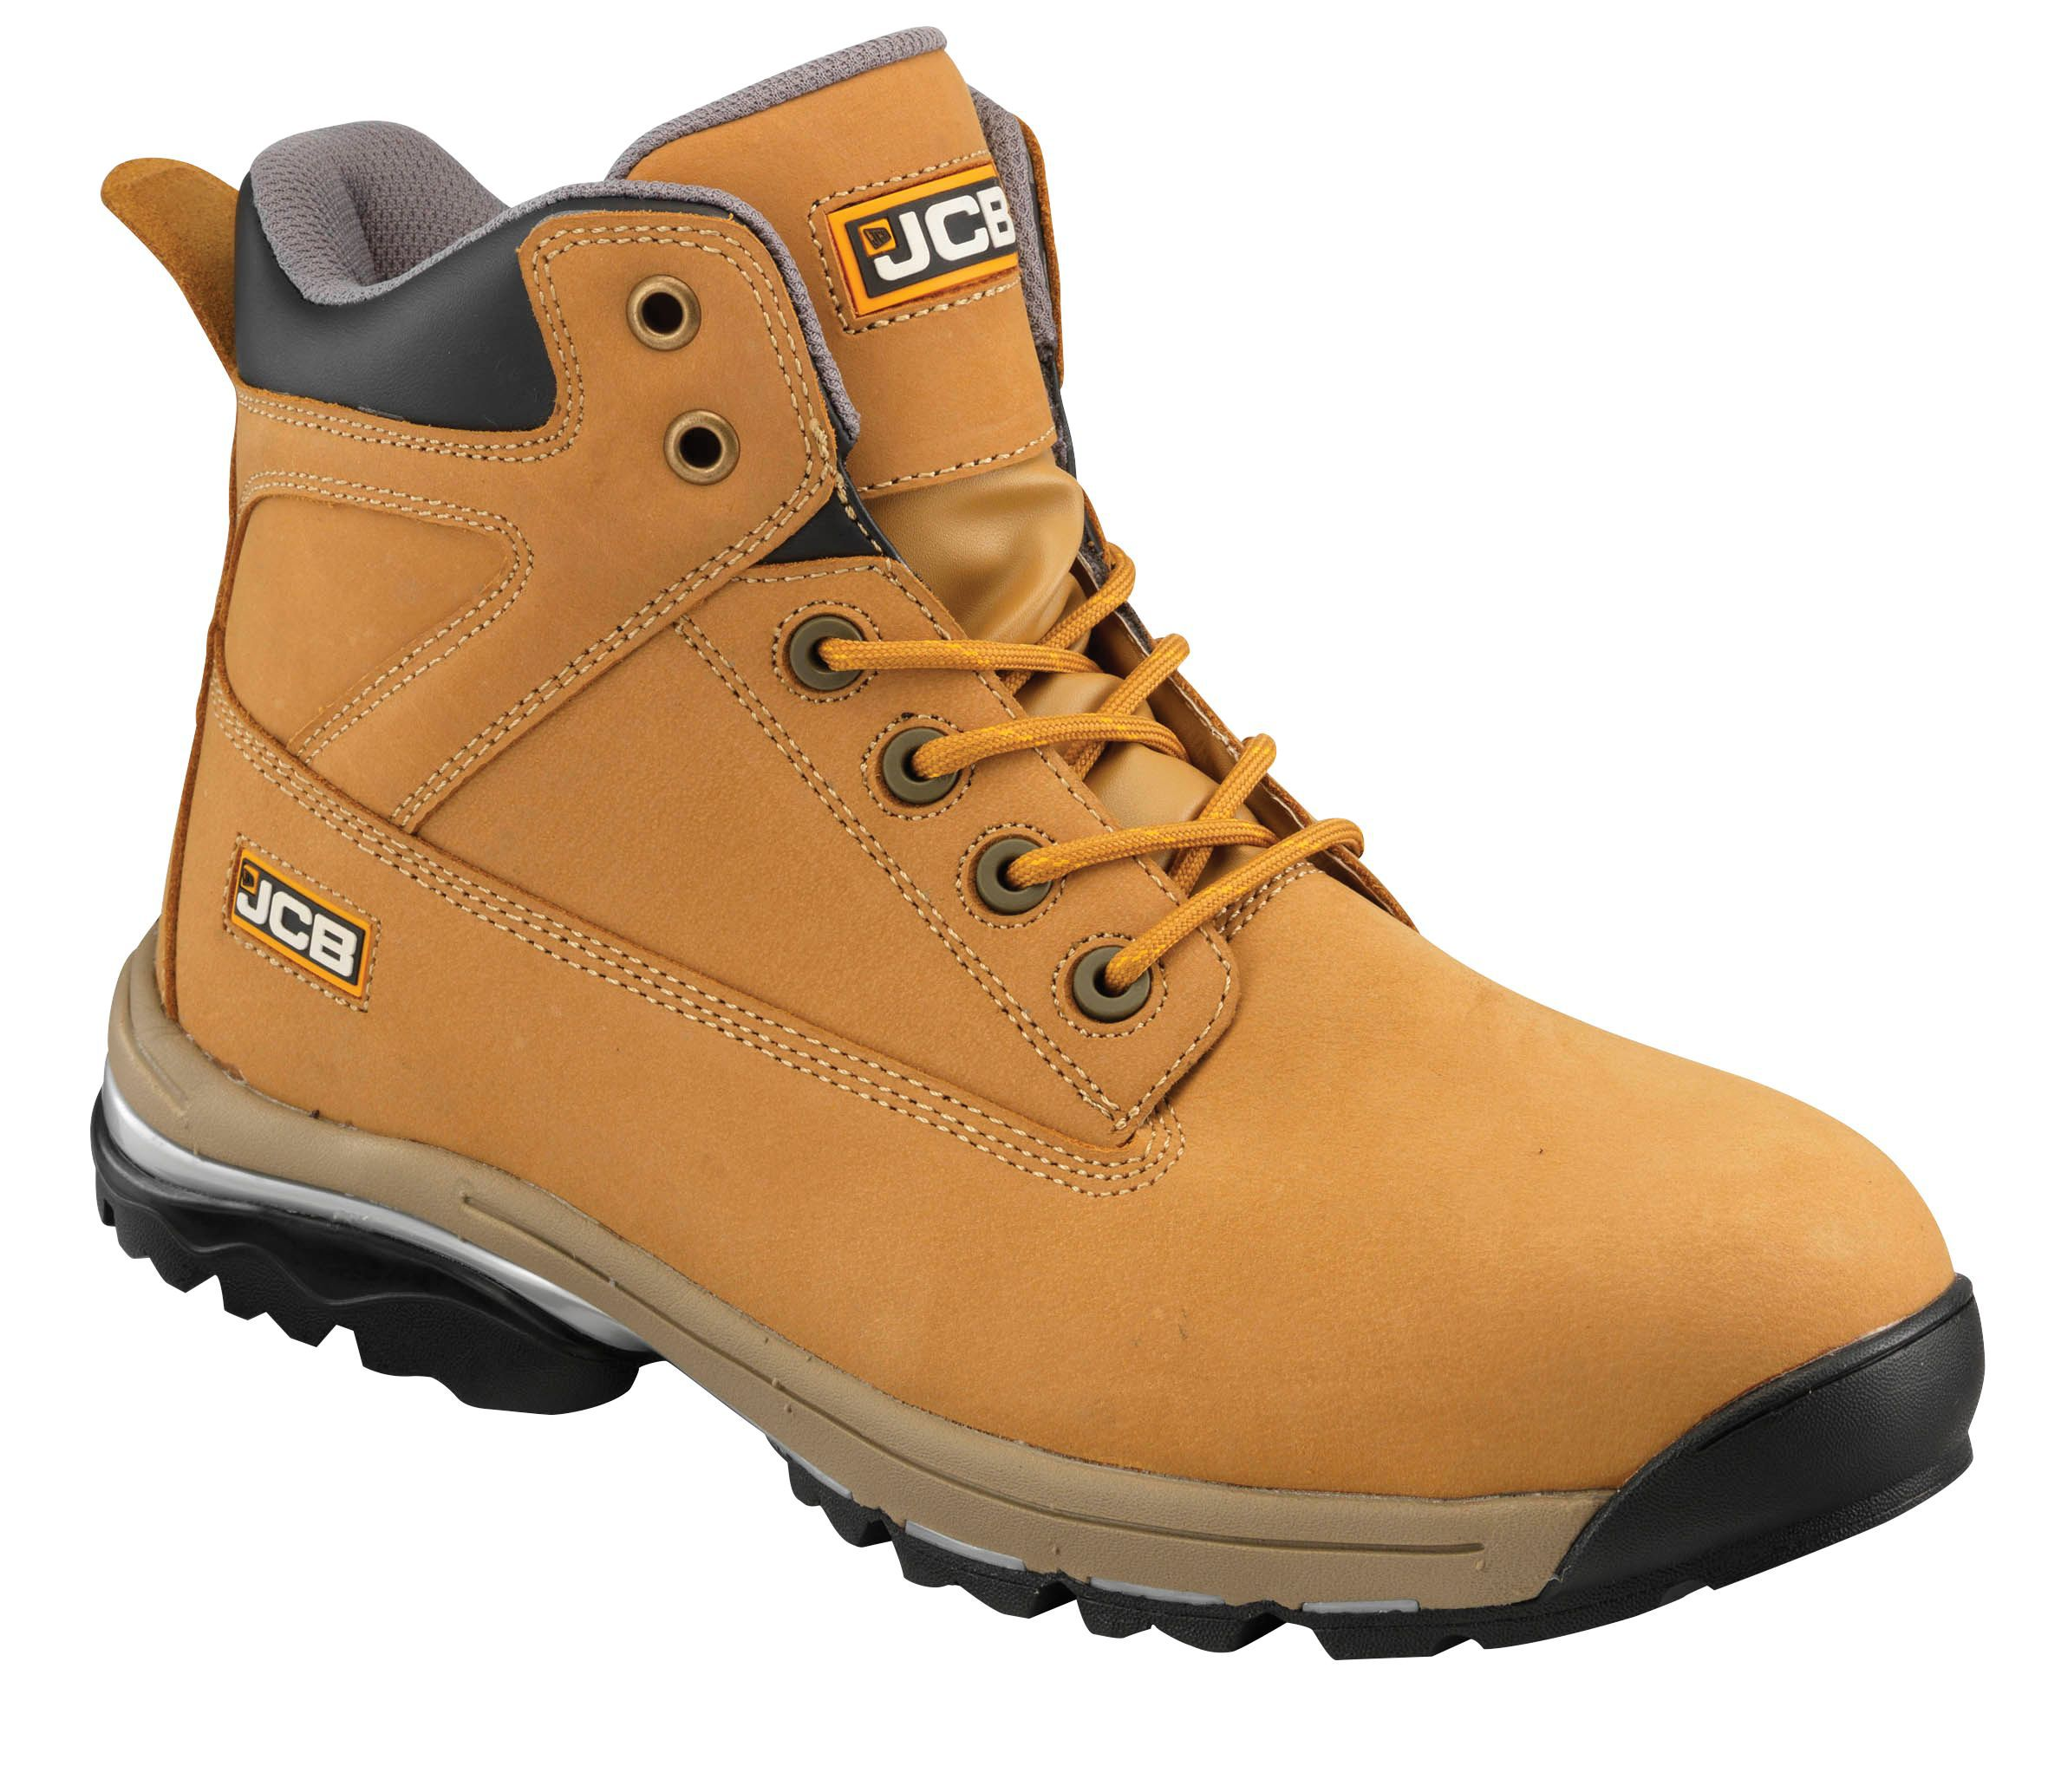 Jcb Honey Workmax Boots, Size 6